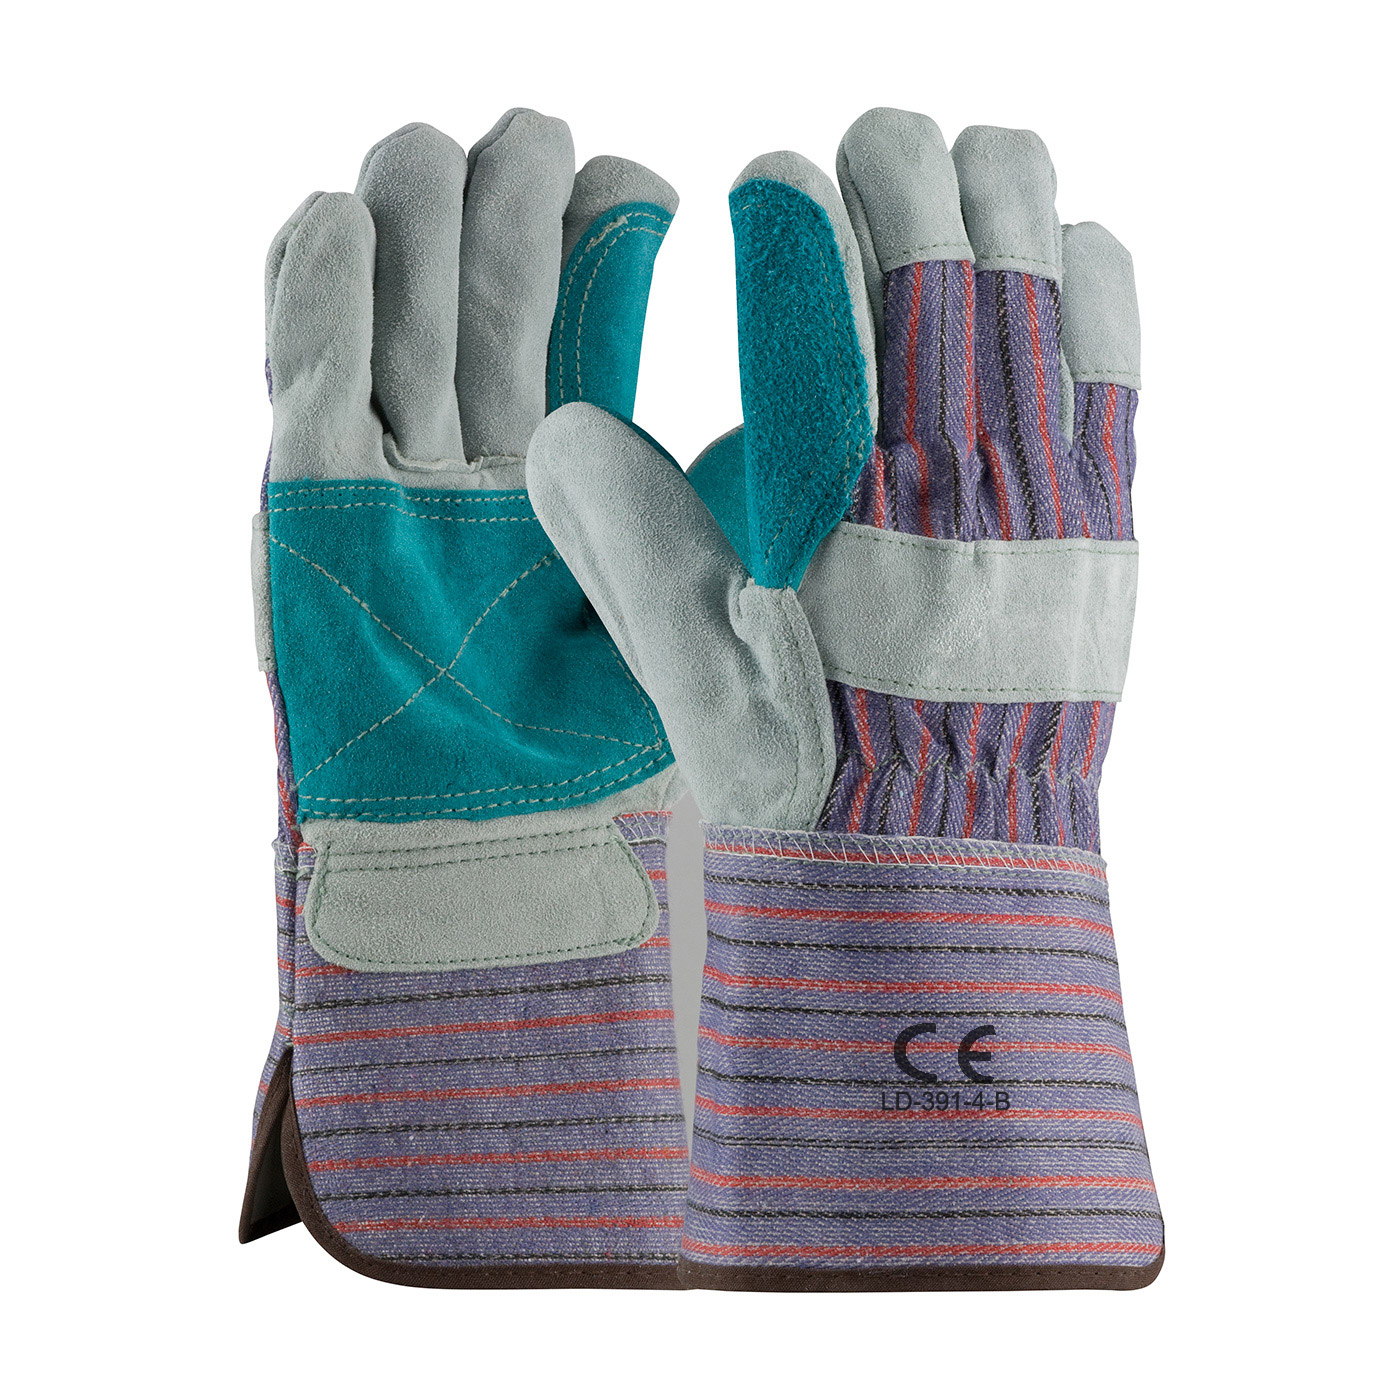 """LD-391-B-4"""" Wide Double Palm Leather Work Gloves"""